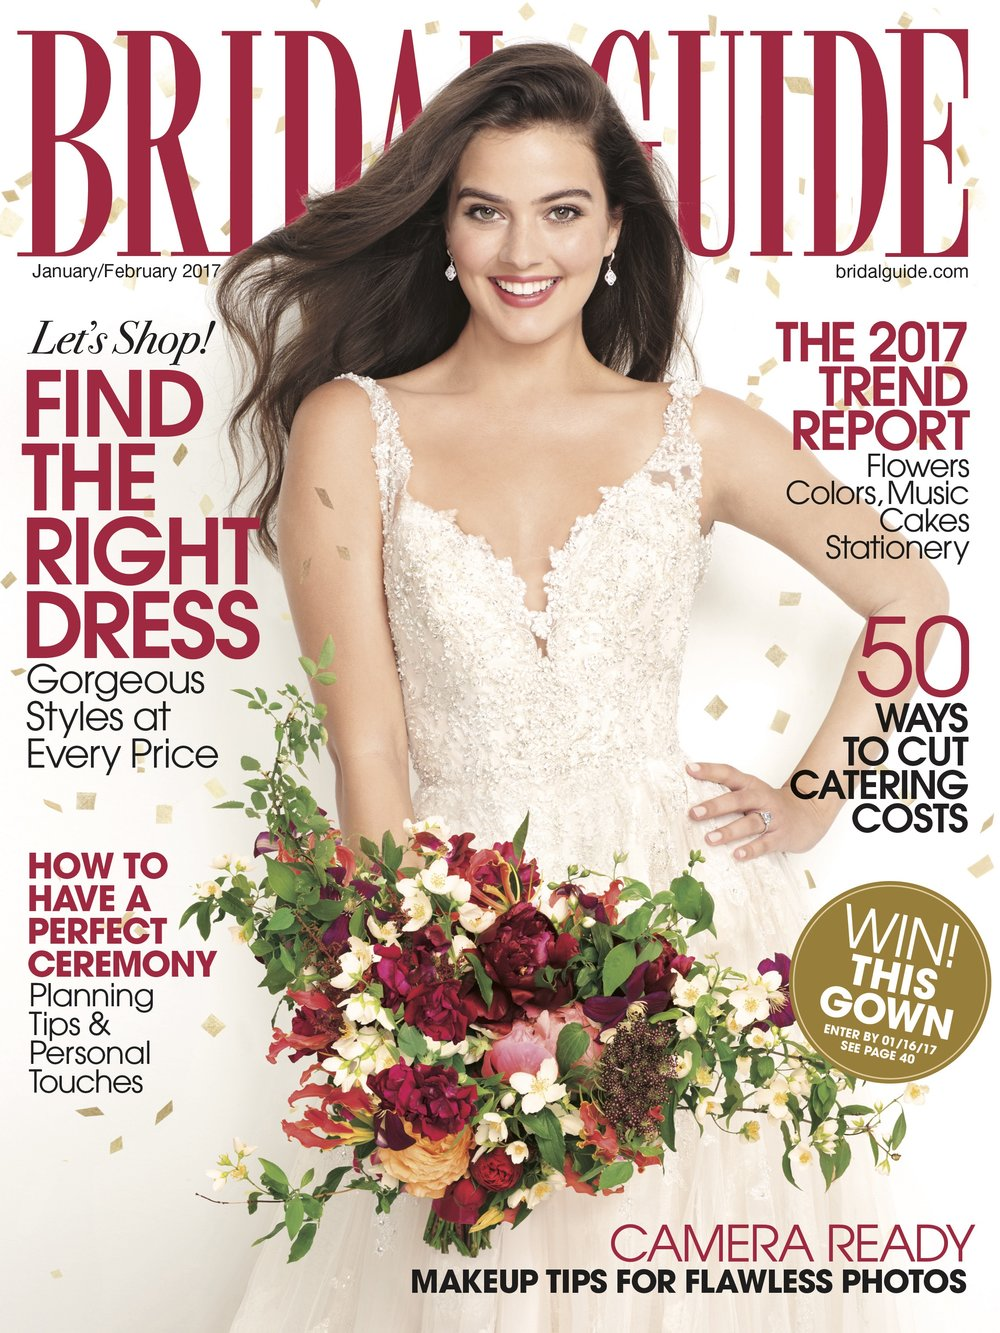 best wedding planner Bridal Guide cover.jpg